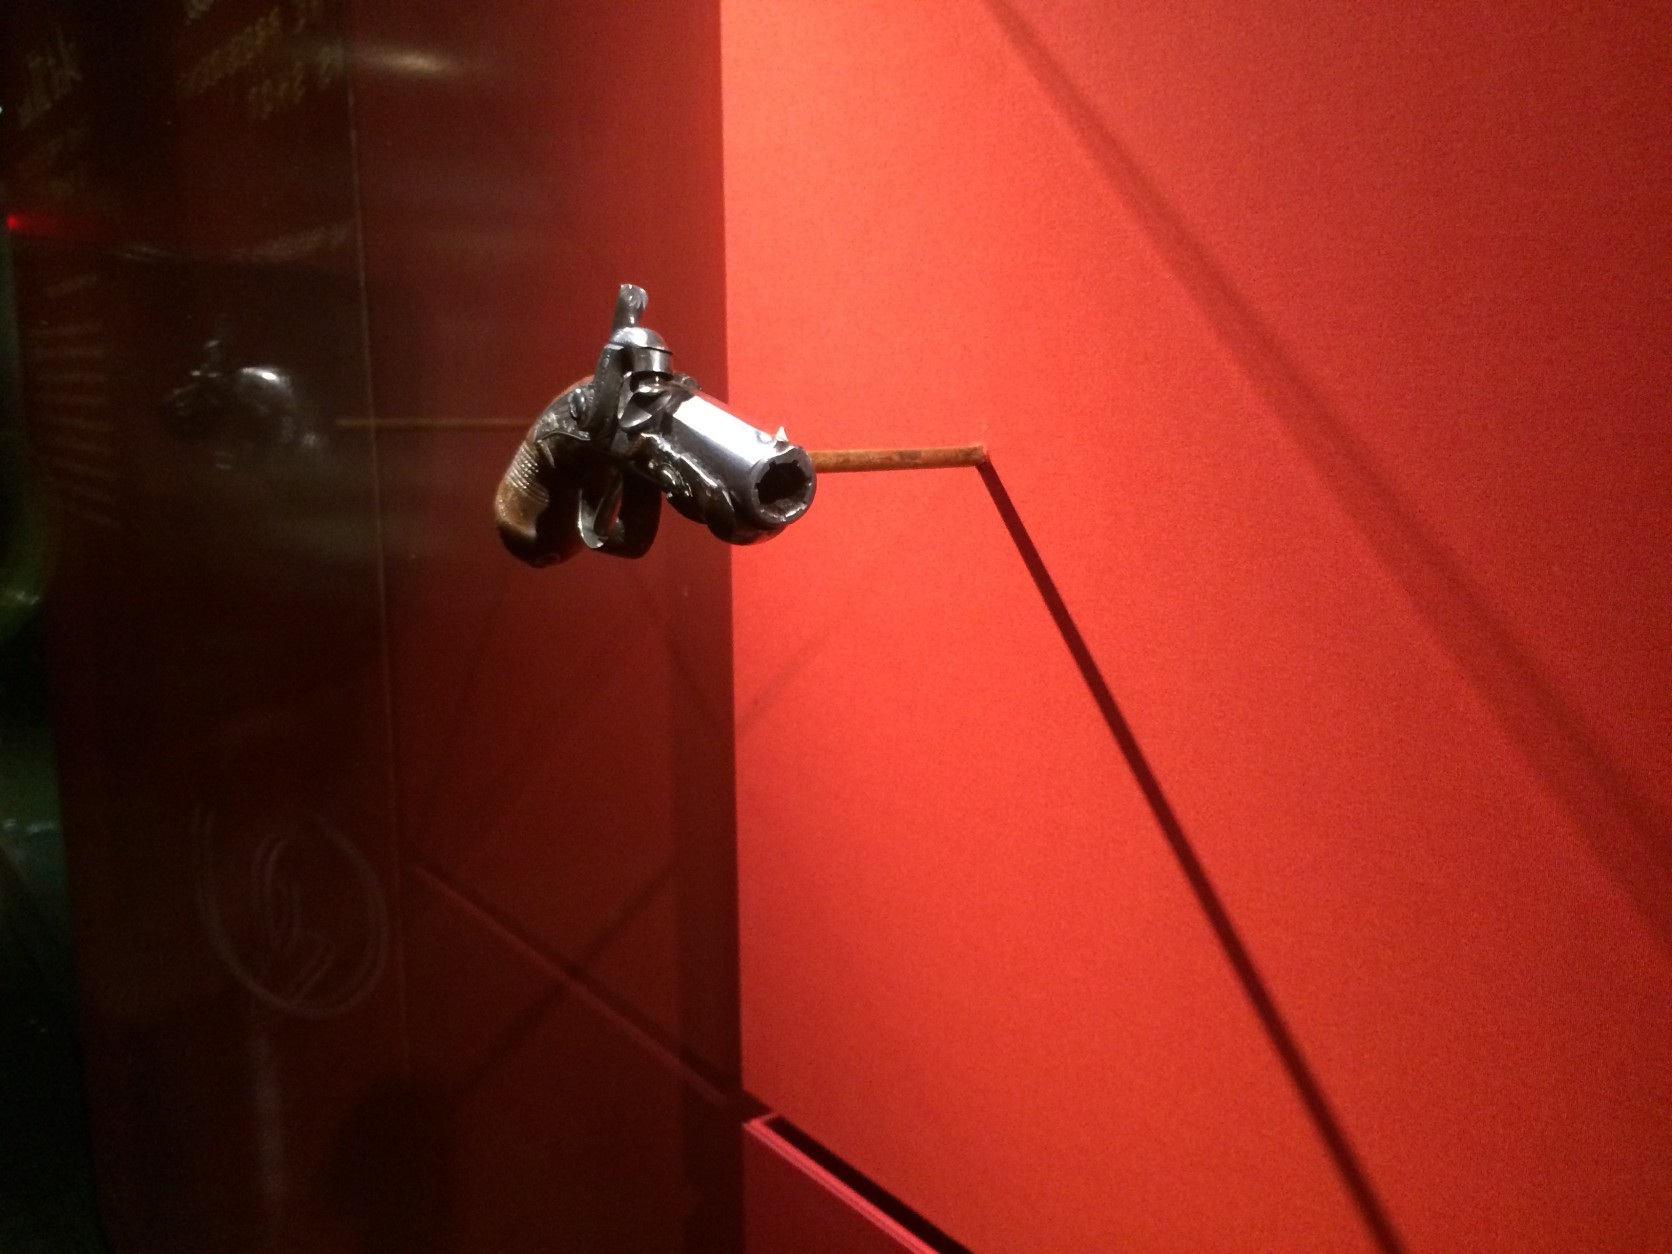 John Wilkes Booth's deringer pistol is the gun that changed history. (WTOP/Nick Iannelli)